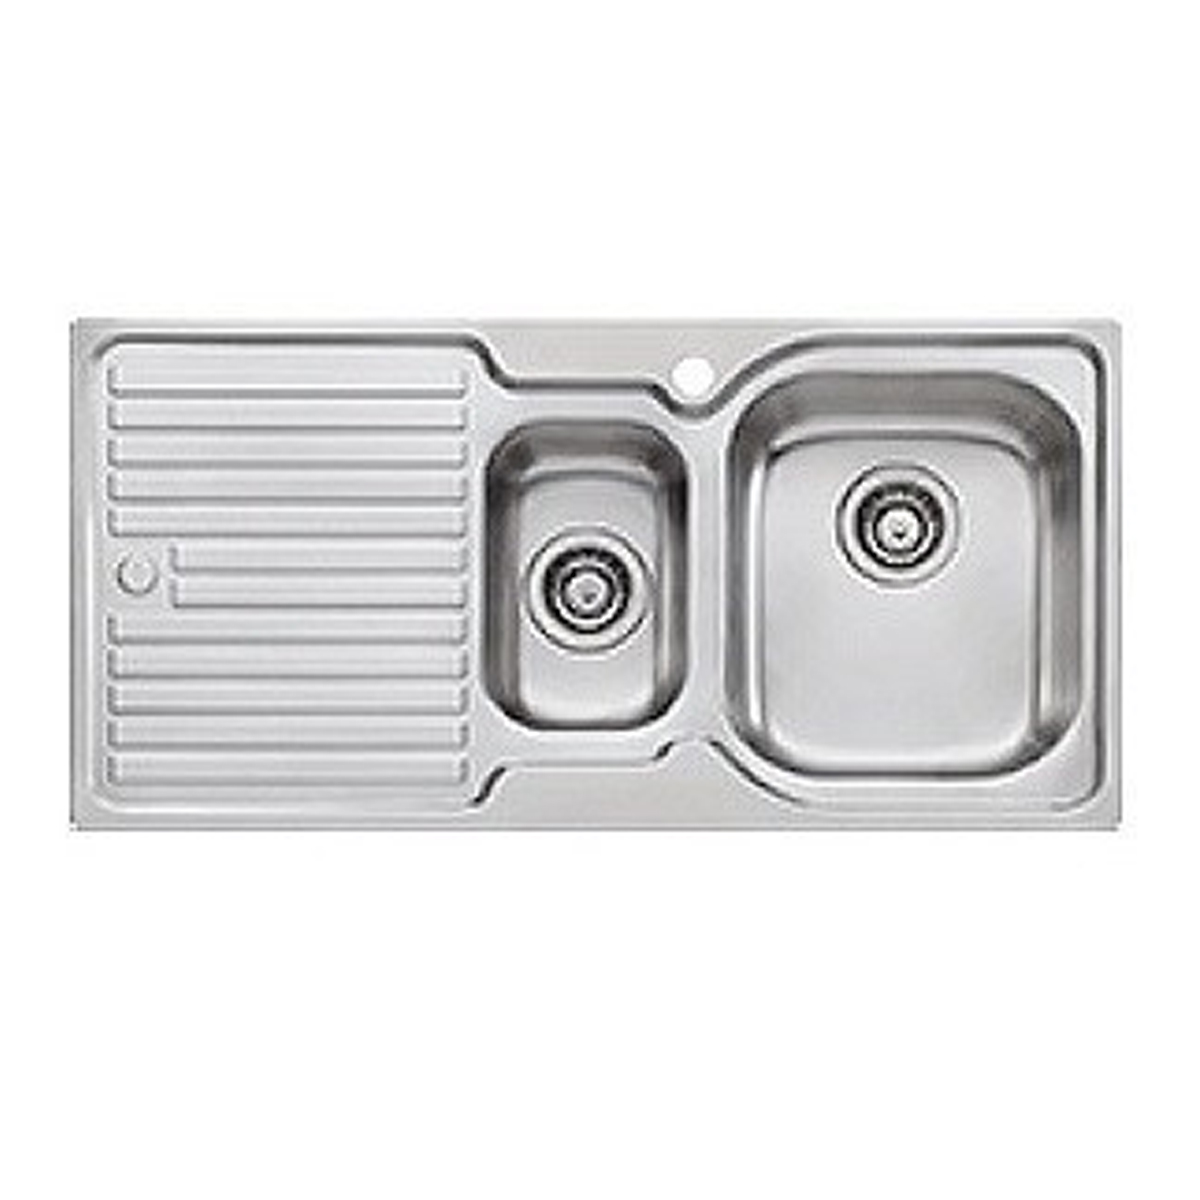 Oliveri EL002 Stainless Steel Right Hand Bowl Sink